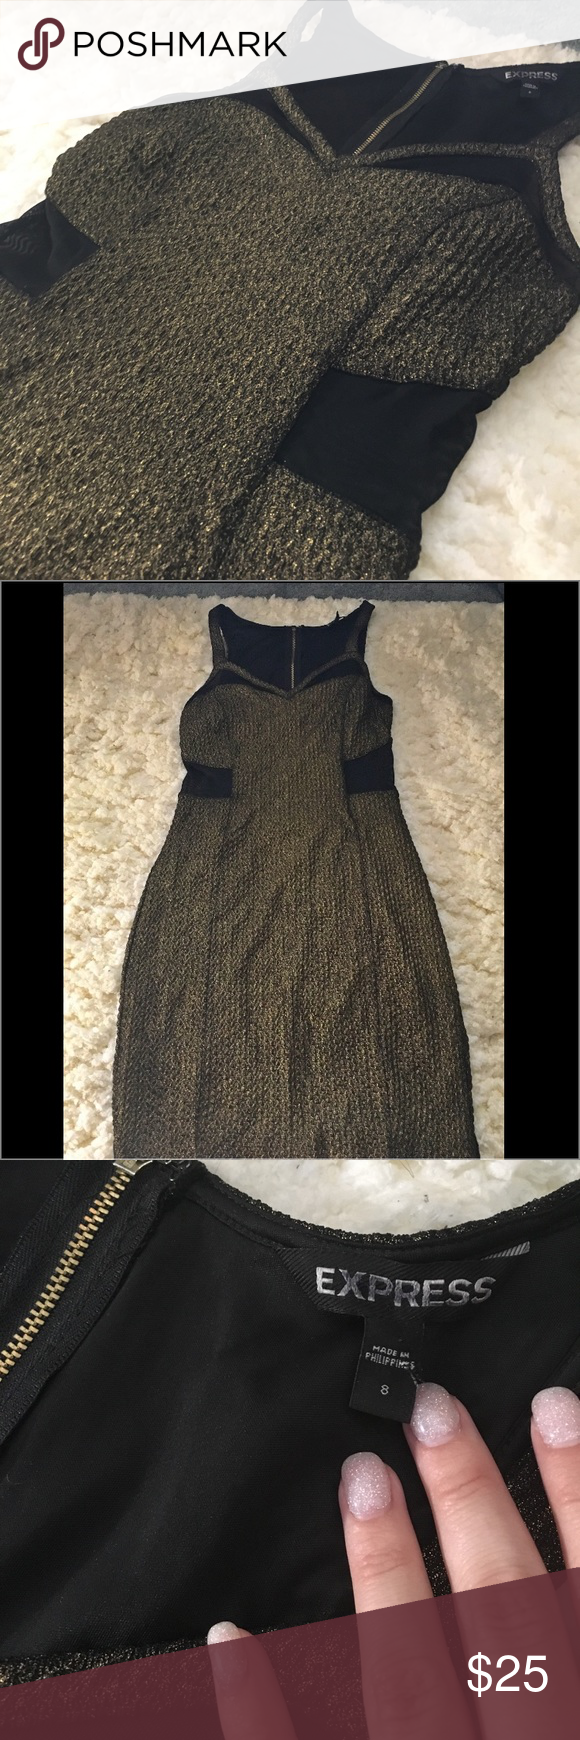 Express Black & Gold Mesh Bodycon Dress Beautiful dress! Great condition. Super Cute for a girls night out or dress it up with tights and a cardigan. Gold zipper down back Express Dresses